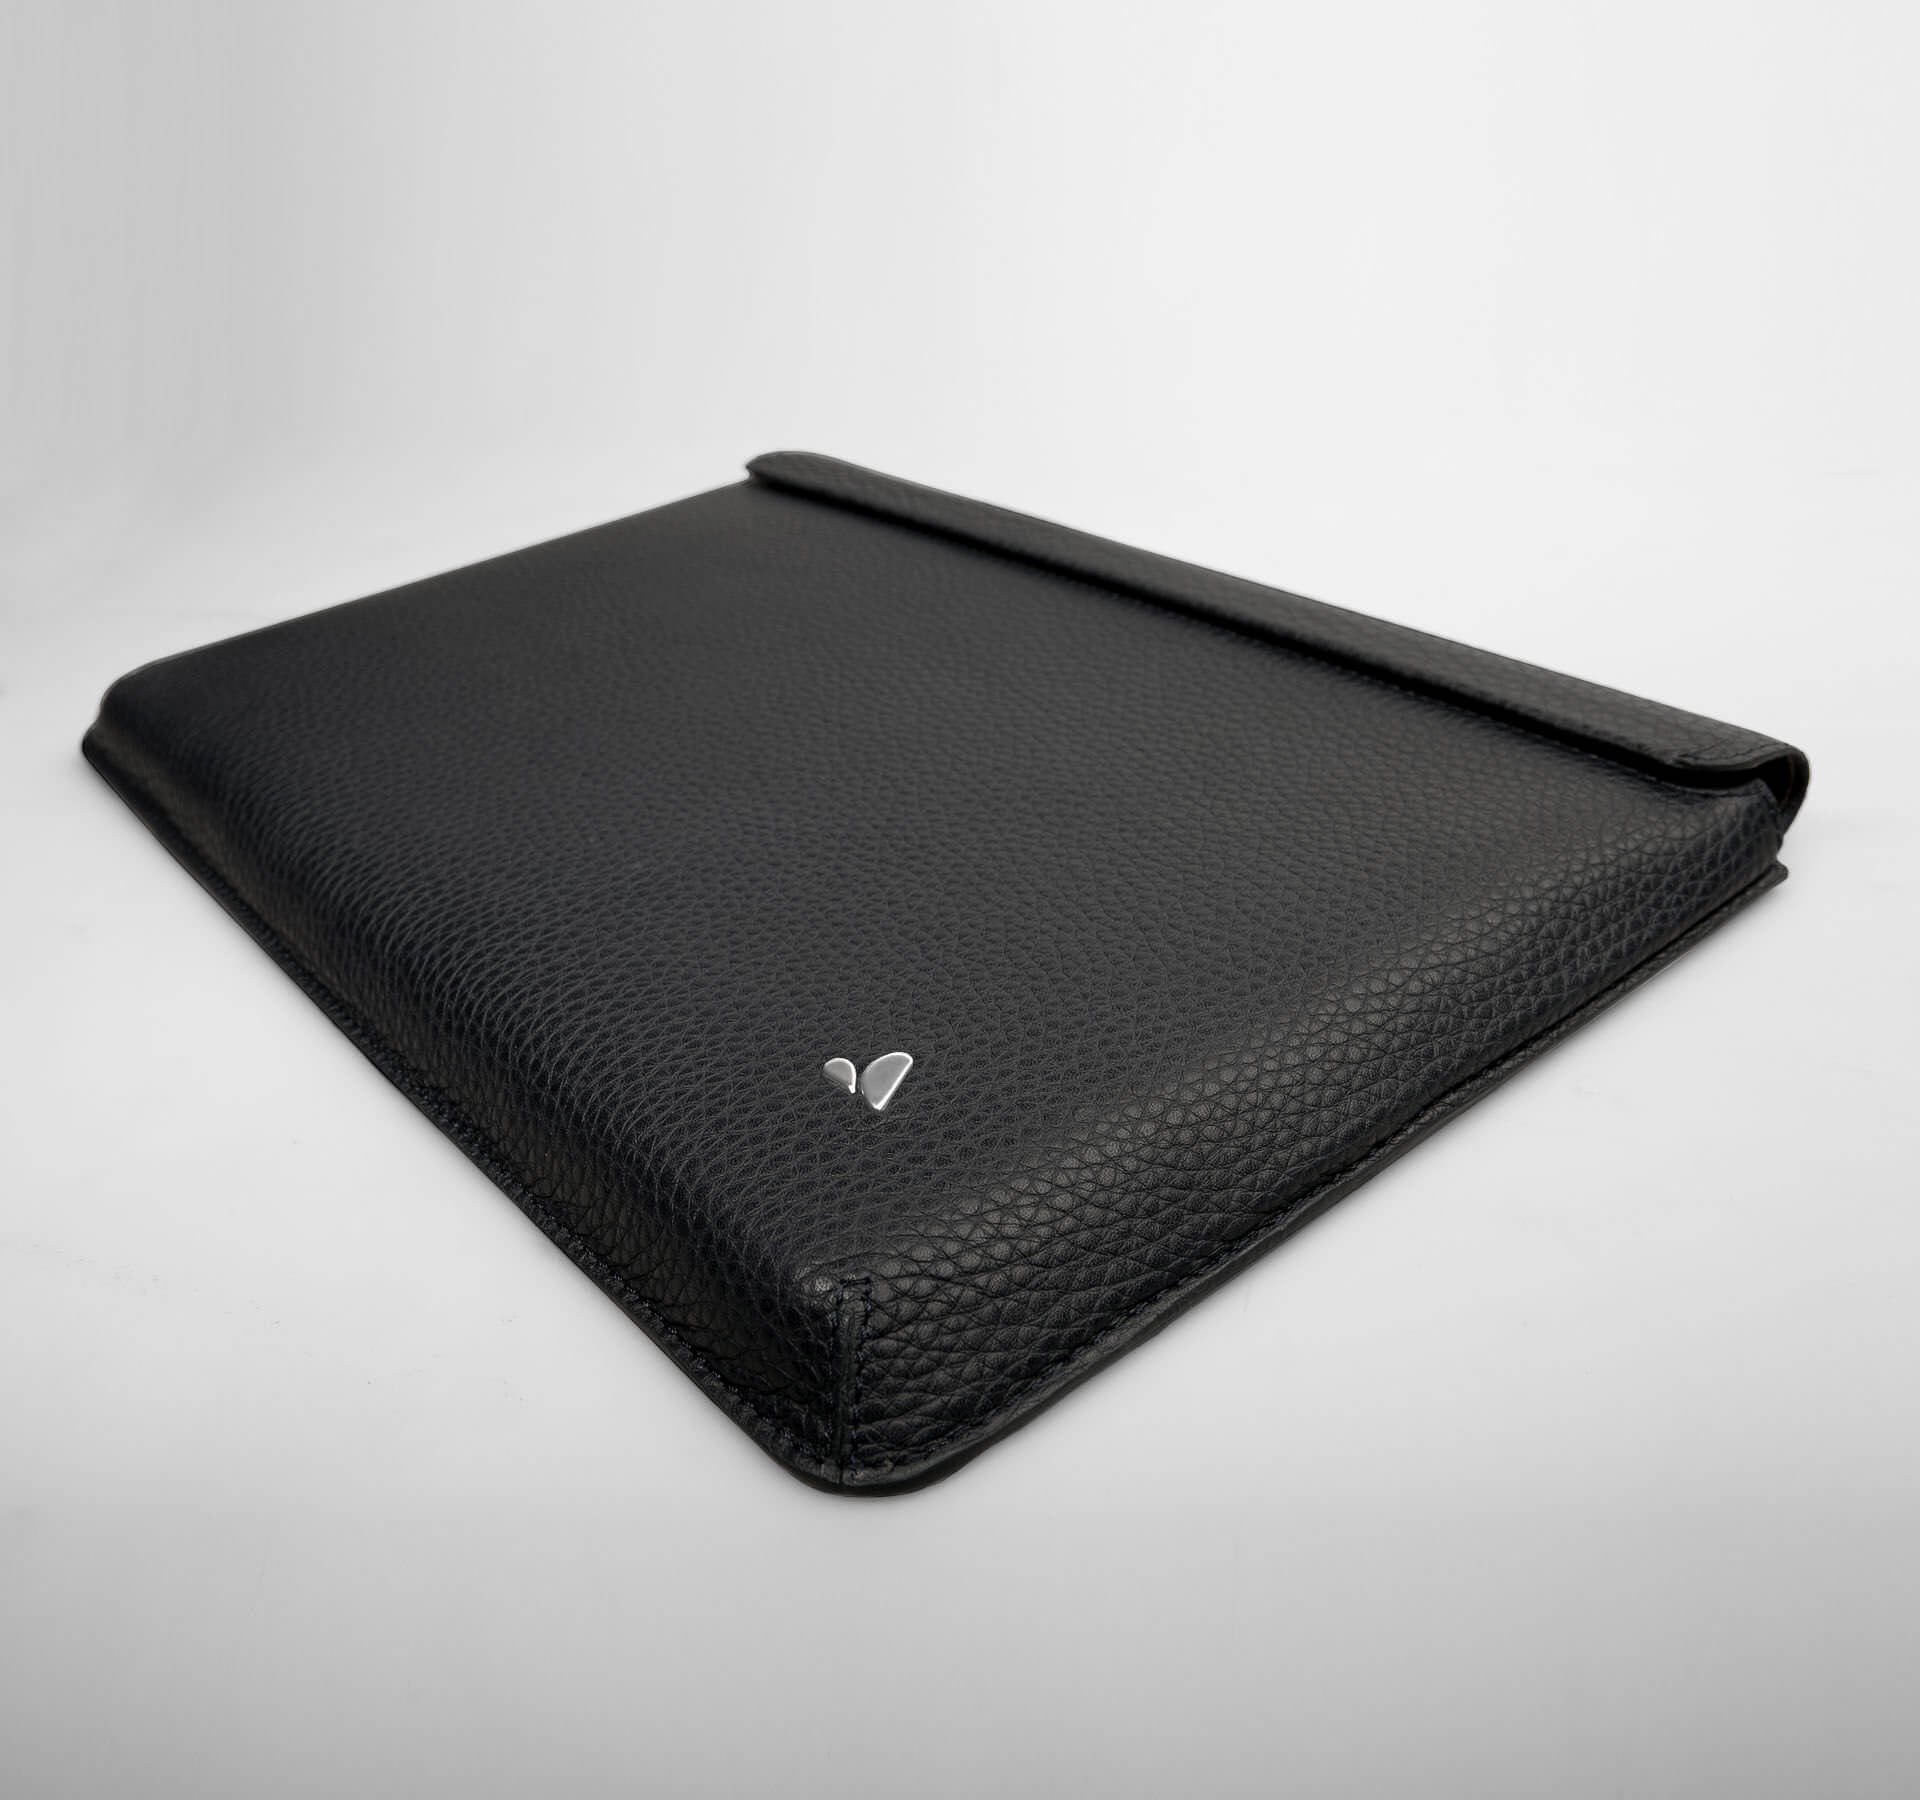 sports shoes 09da3 92af4 MacBook Pro Touch Bar 13 Leather Sleeve